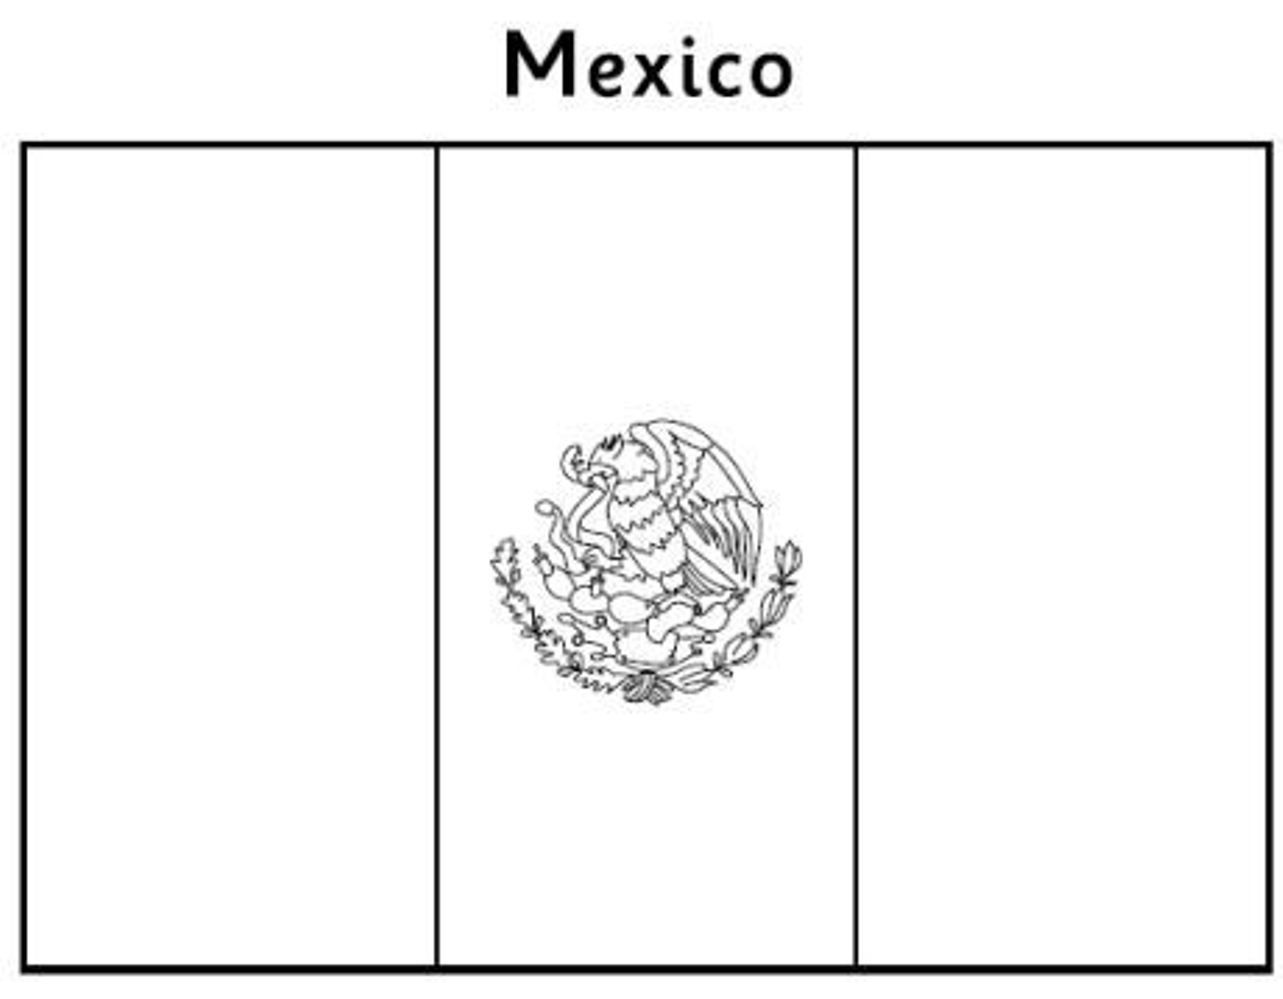 mexican flag coloring mexico flag1 countries coloring pages coloring book flag mexican coloring